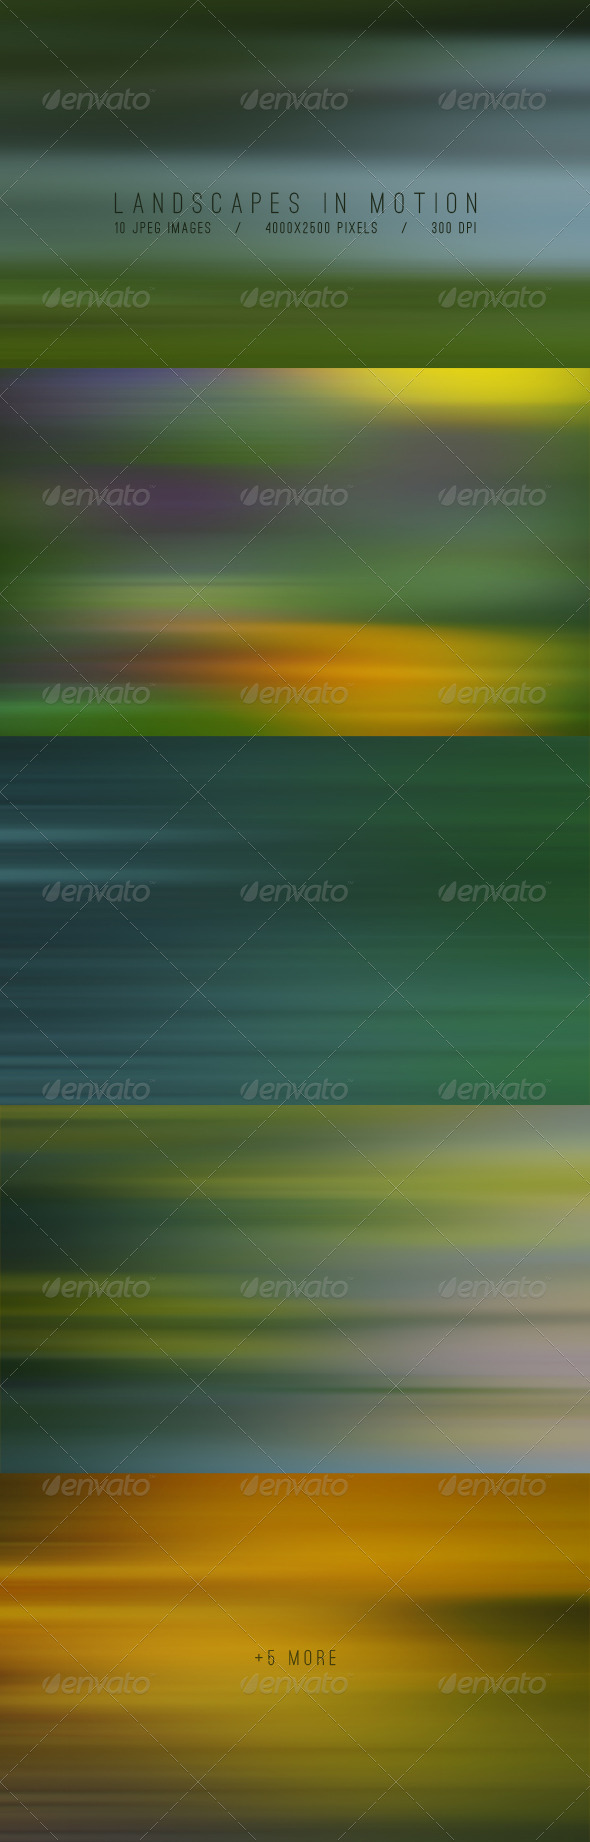 GraphicRiver Landscapes in Motion 6519409